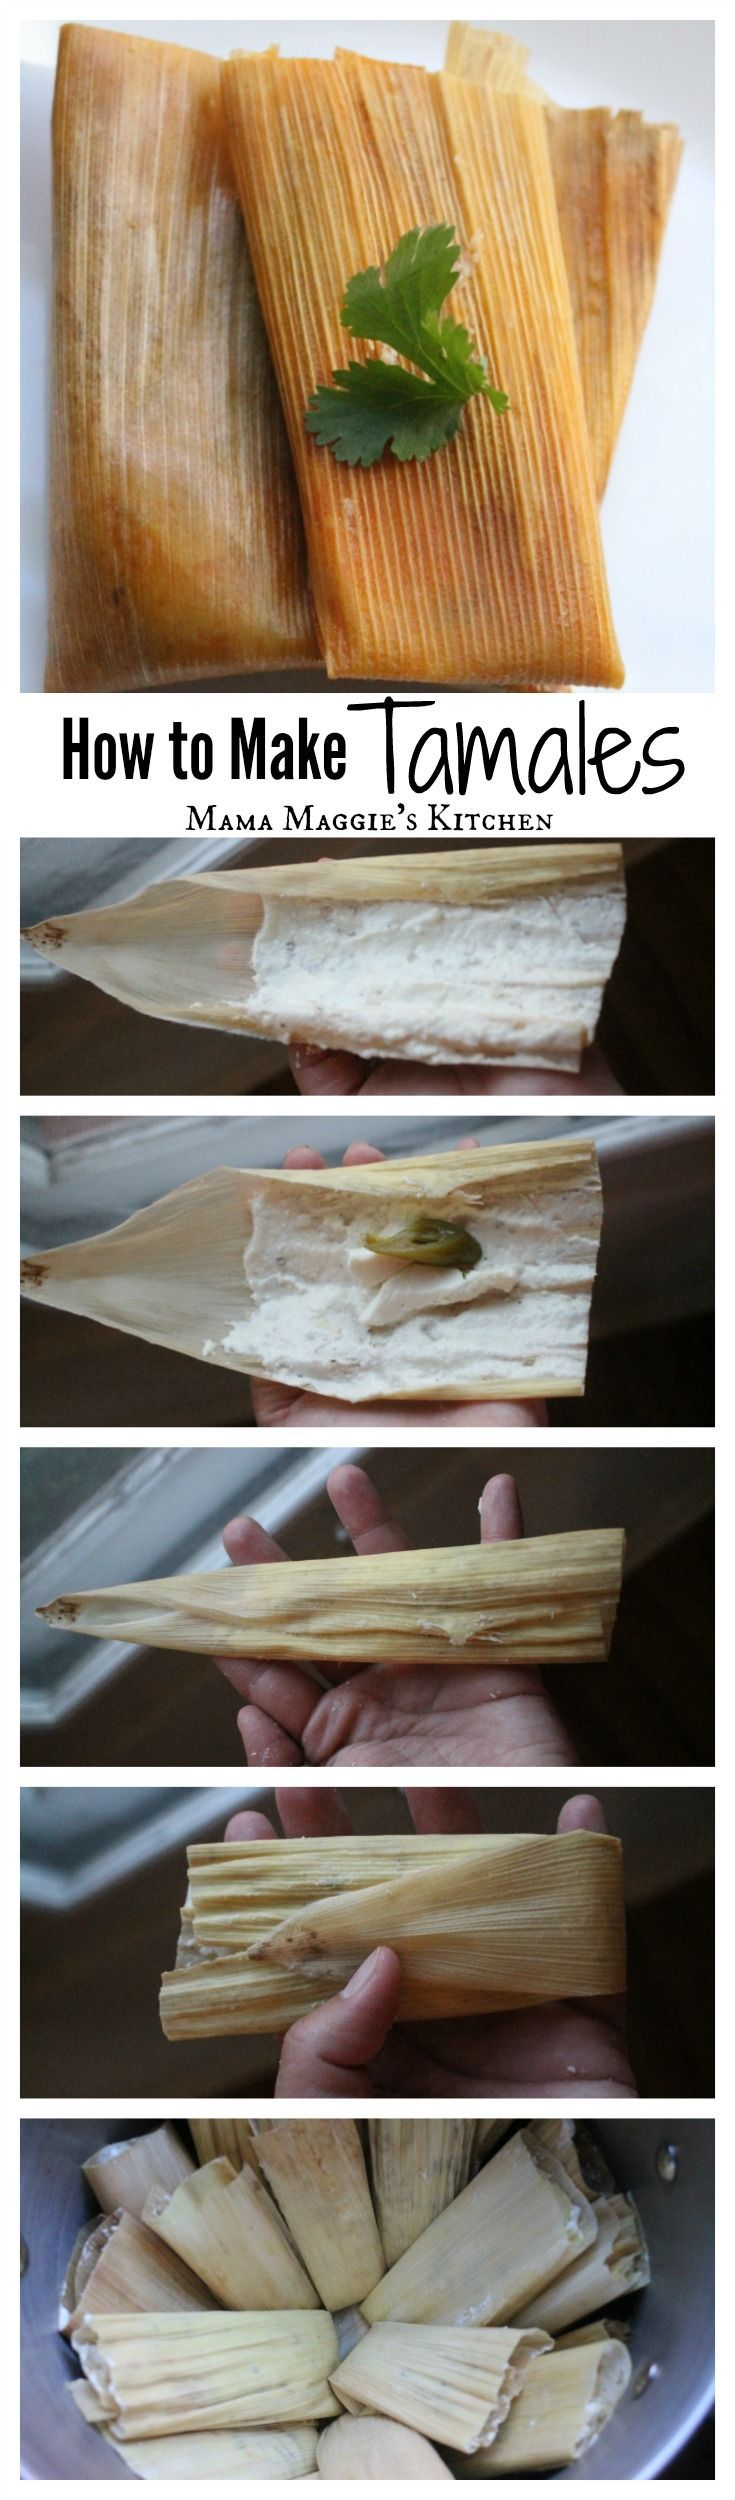 Tamales Recipe: Rajas con Queso, or Jalapeño and Cheese Tamales - this classic and yummy dish is a Mexican food favorite. - by Mama Maggie's Kitchen